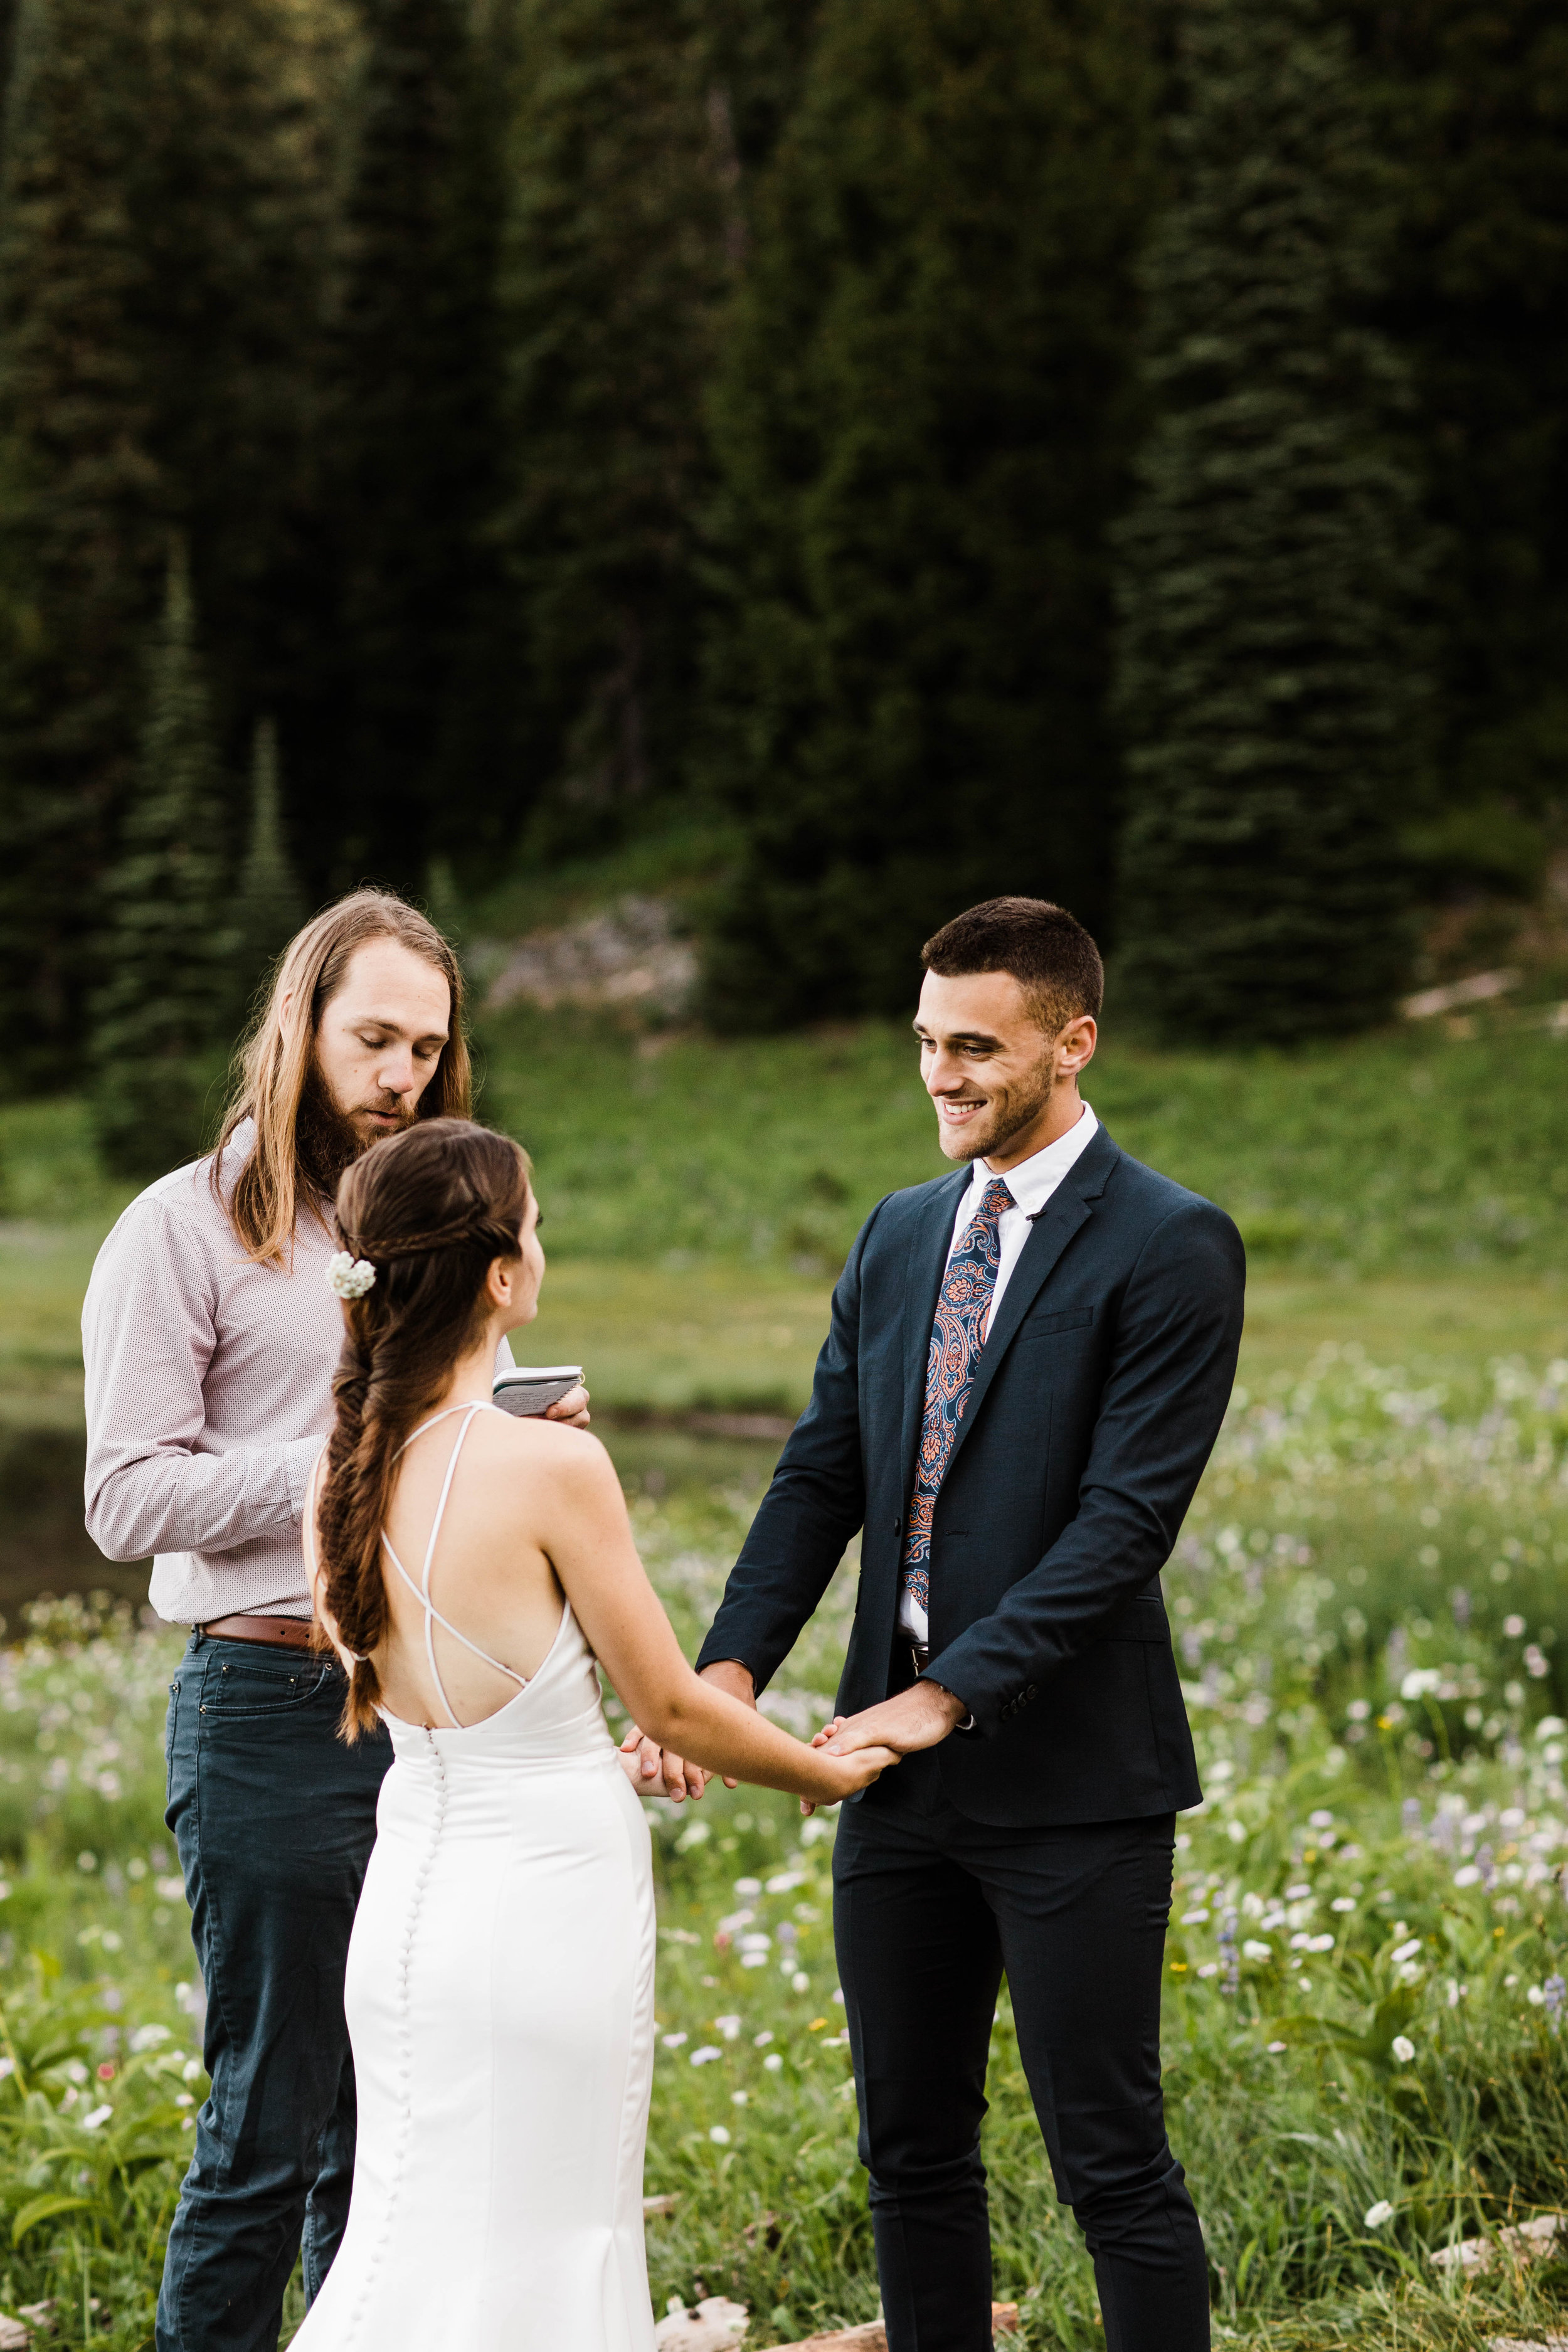 Mount Rainier National Park elopement ceremony in the mountains | Washington state adventure wedding photographers